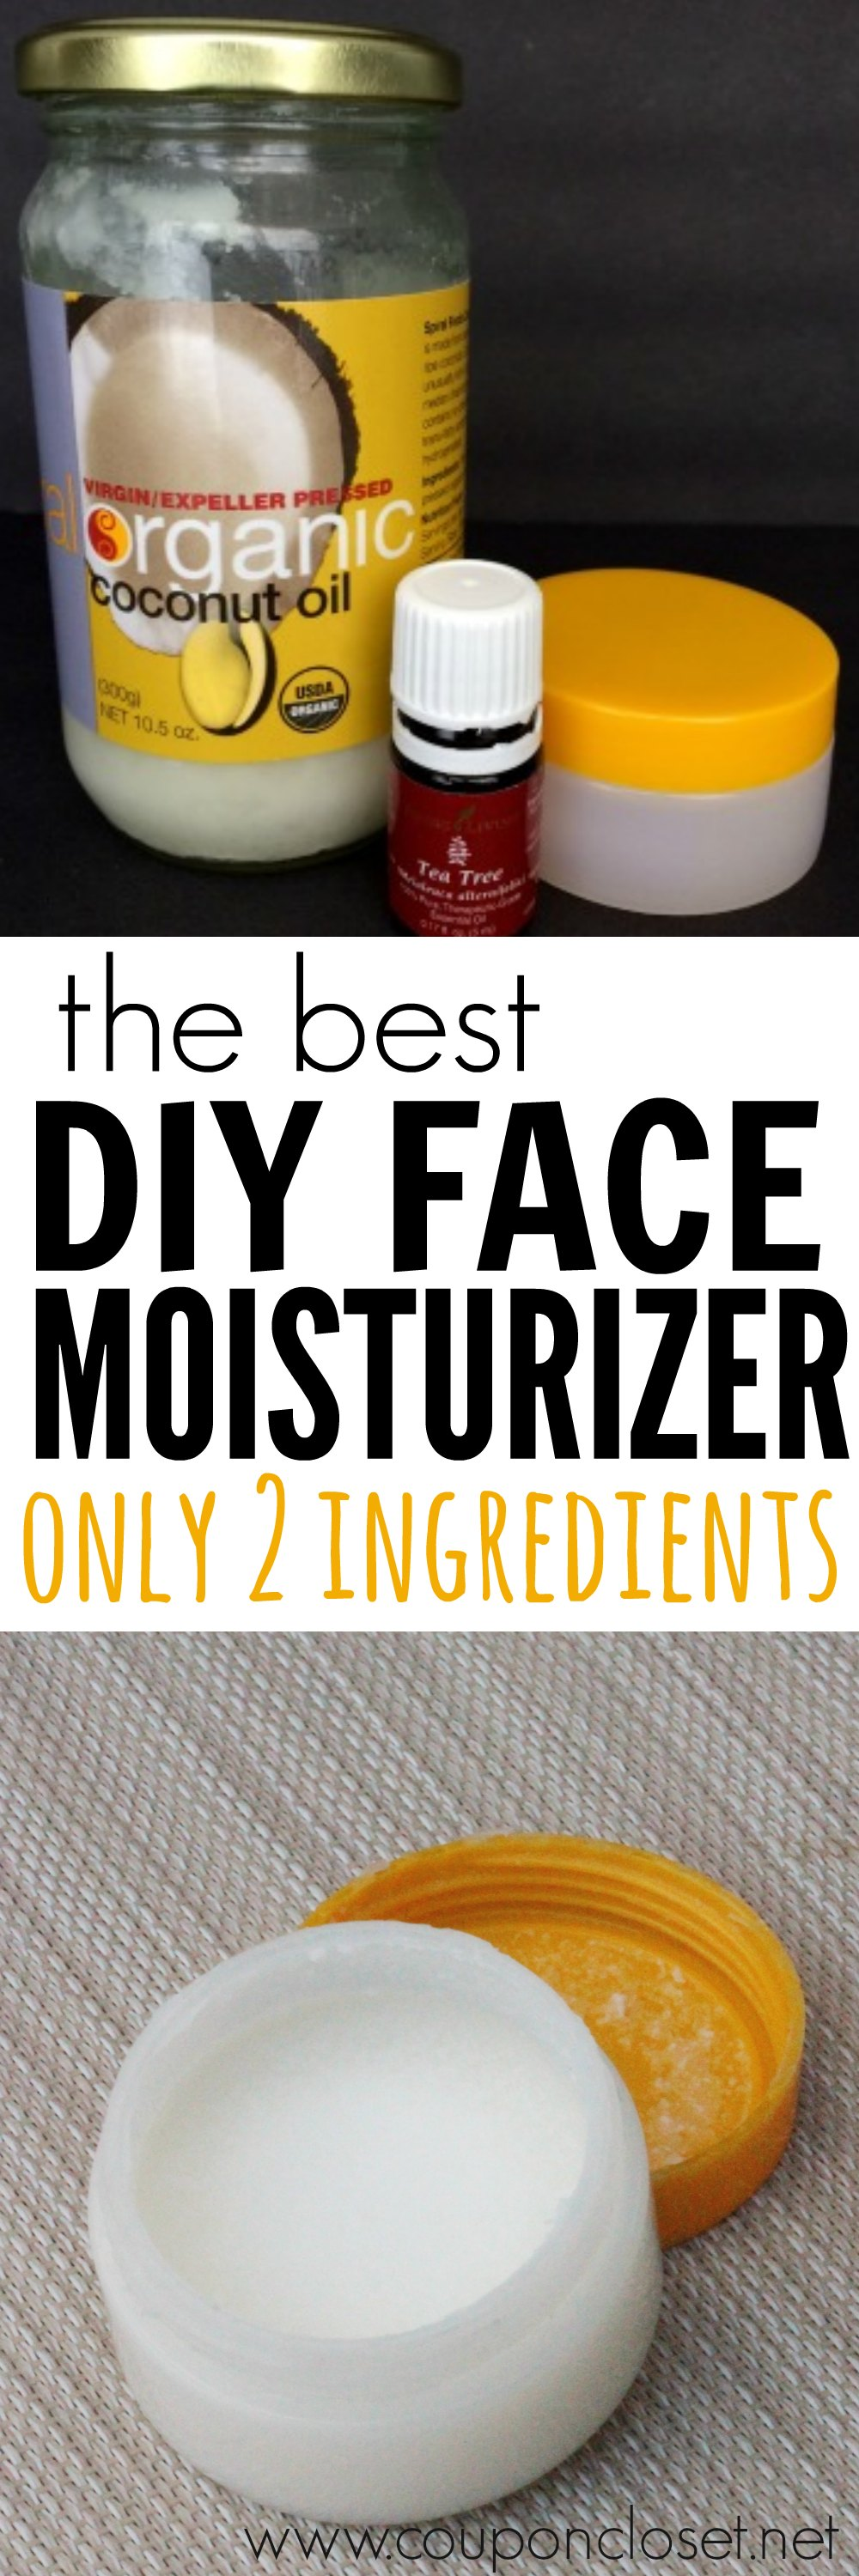 You are going to love this homemade face cream. With only 2 ingredients anyone can make this DIY face moisturizer cream. I promise you are going to love this easy and frugal DIY face moisturizer!